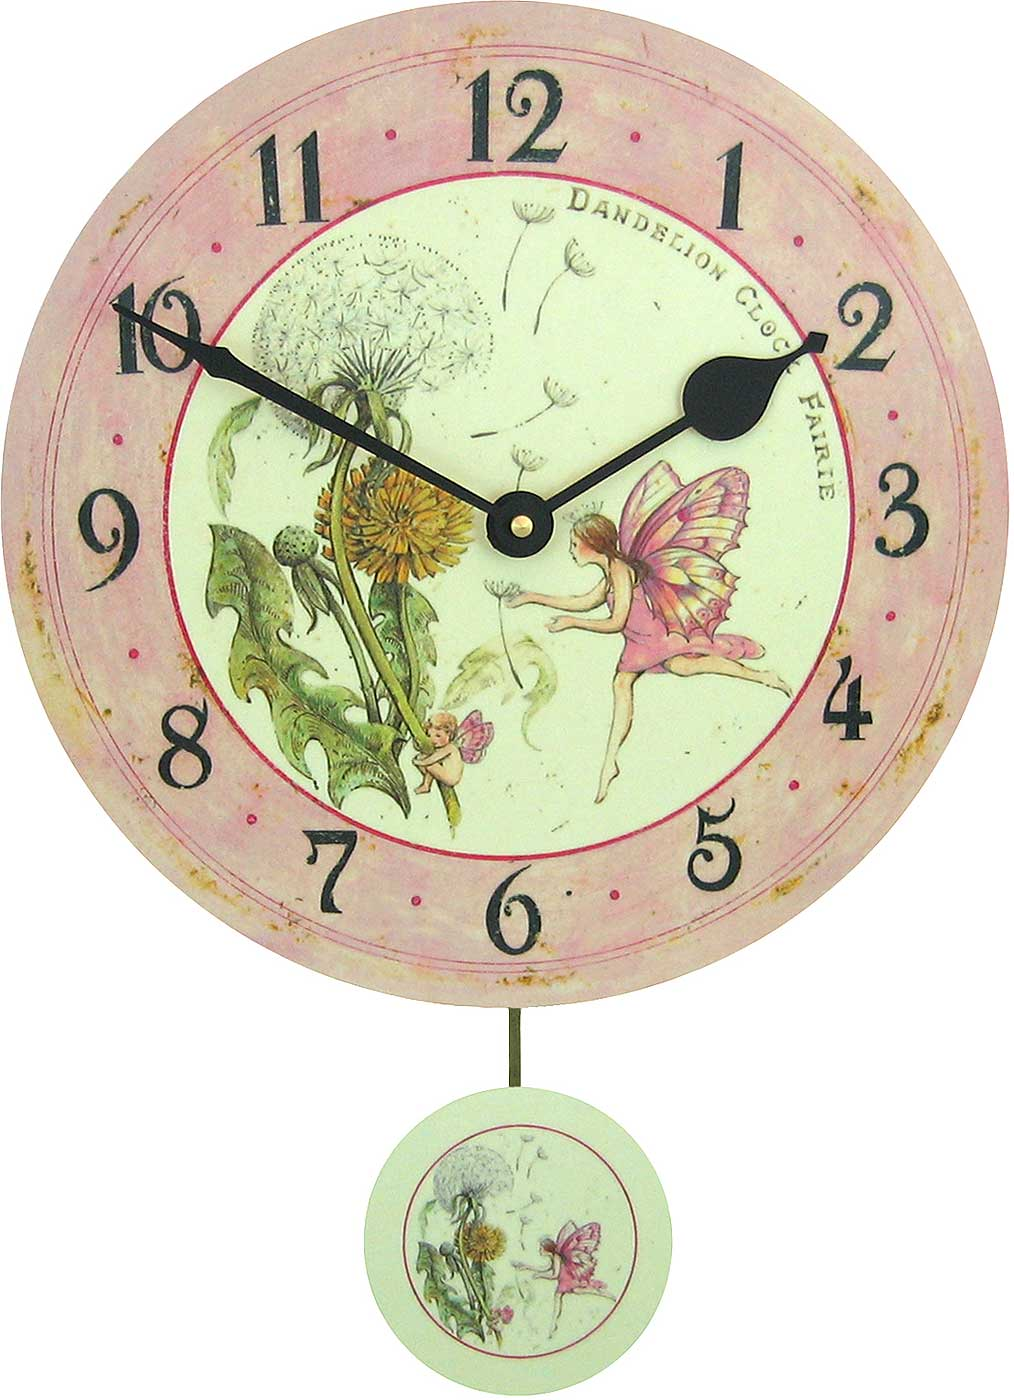 Roger lascelles wdcpendfairie wall clock retro clock new roger lascelles wall and table clocks are made in england they embody the spirit and style of a bygone era amipublicfo Gallery